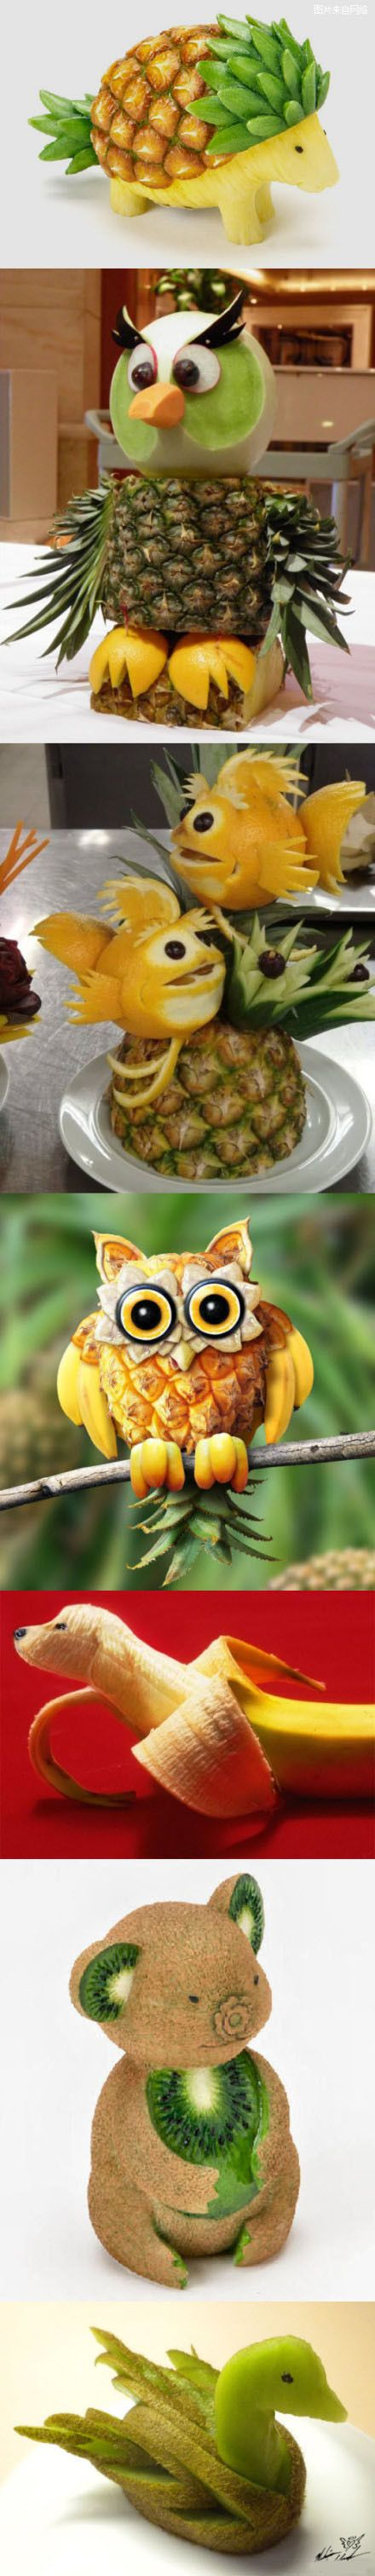 Edible Art, Fruit Animals.